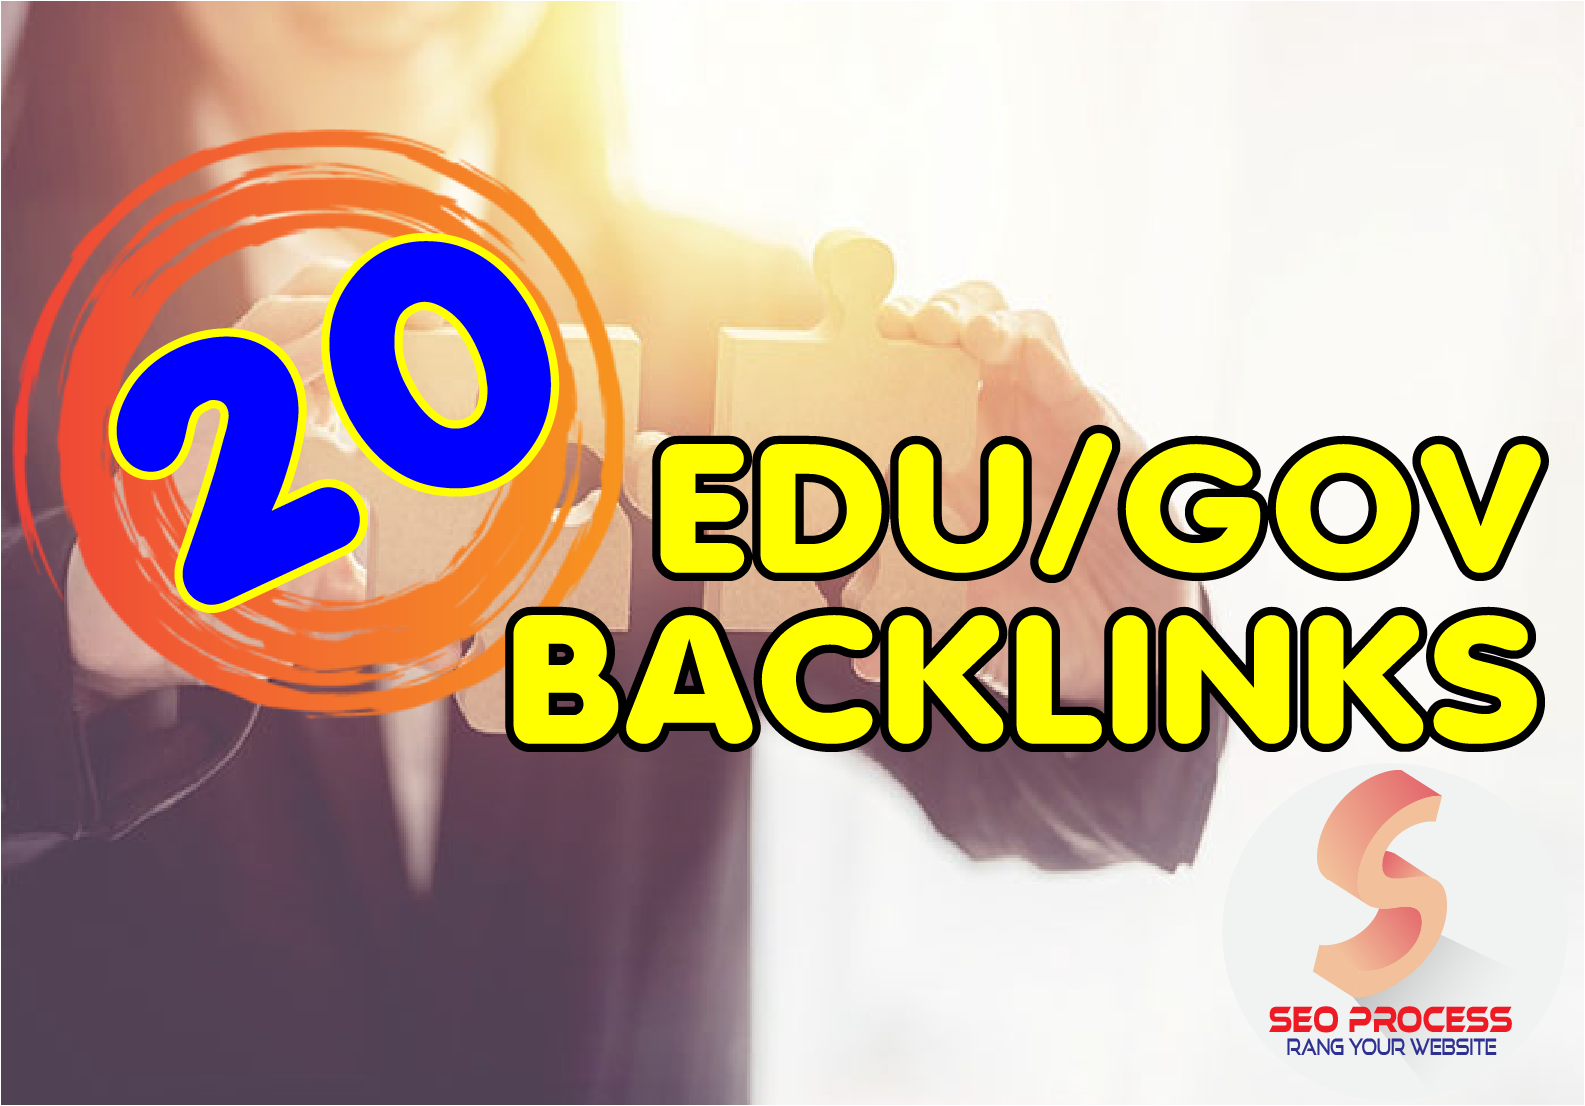 20 EDU/GOV High Authority Dofollow SEO Backlinks To Top DA 80 Premium Sites - Boost website Ranking